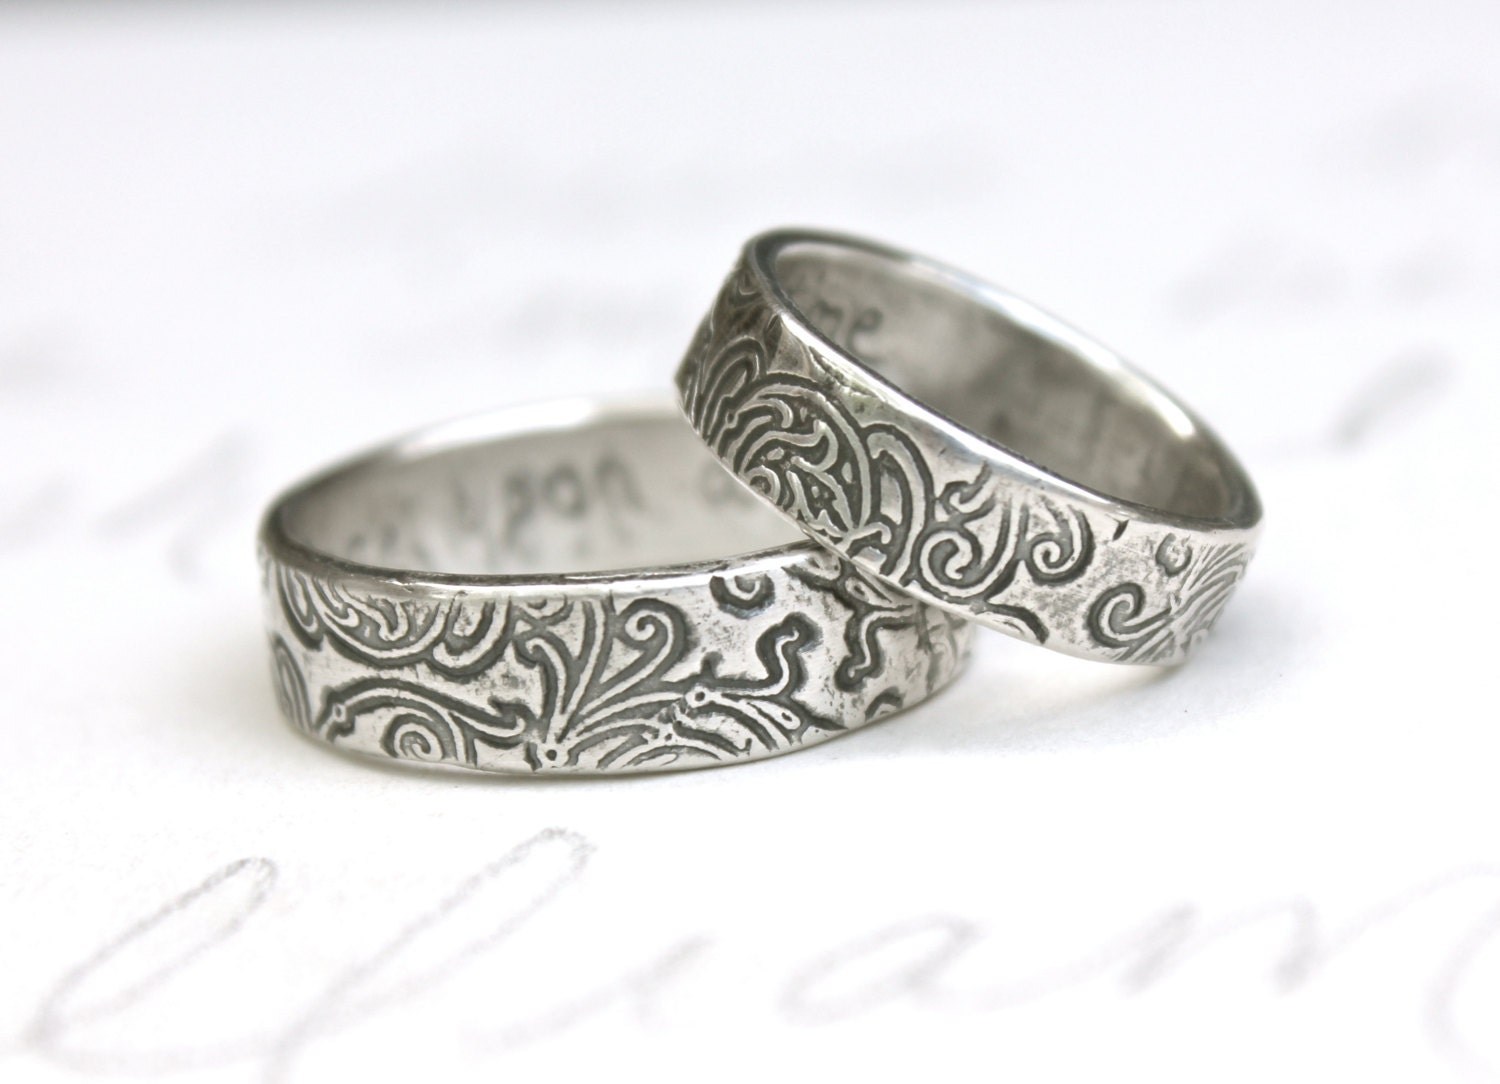 Recycled Silver Wedding Band Set Engraved Once Upon A Time